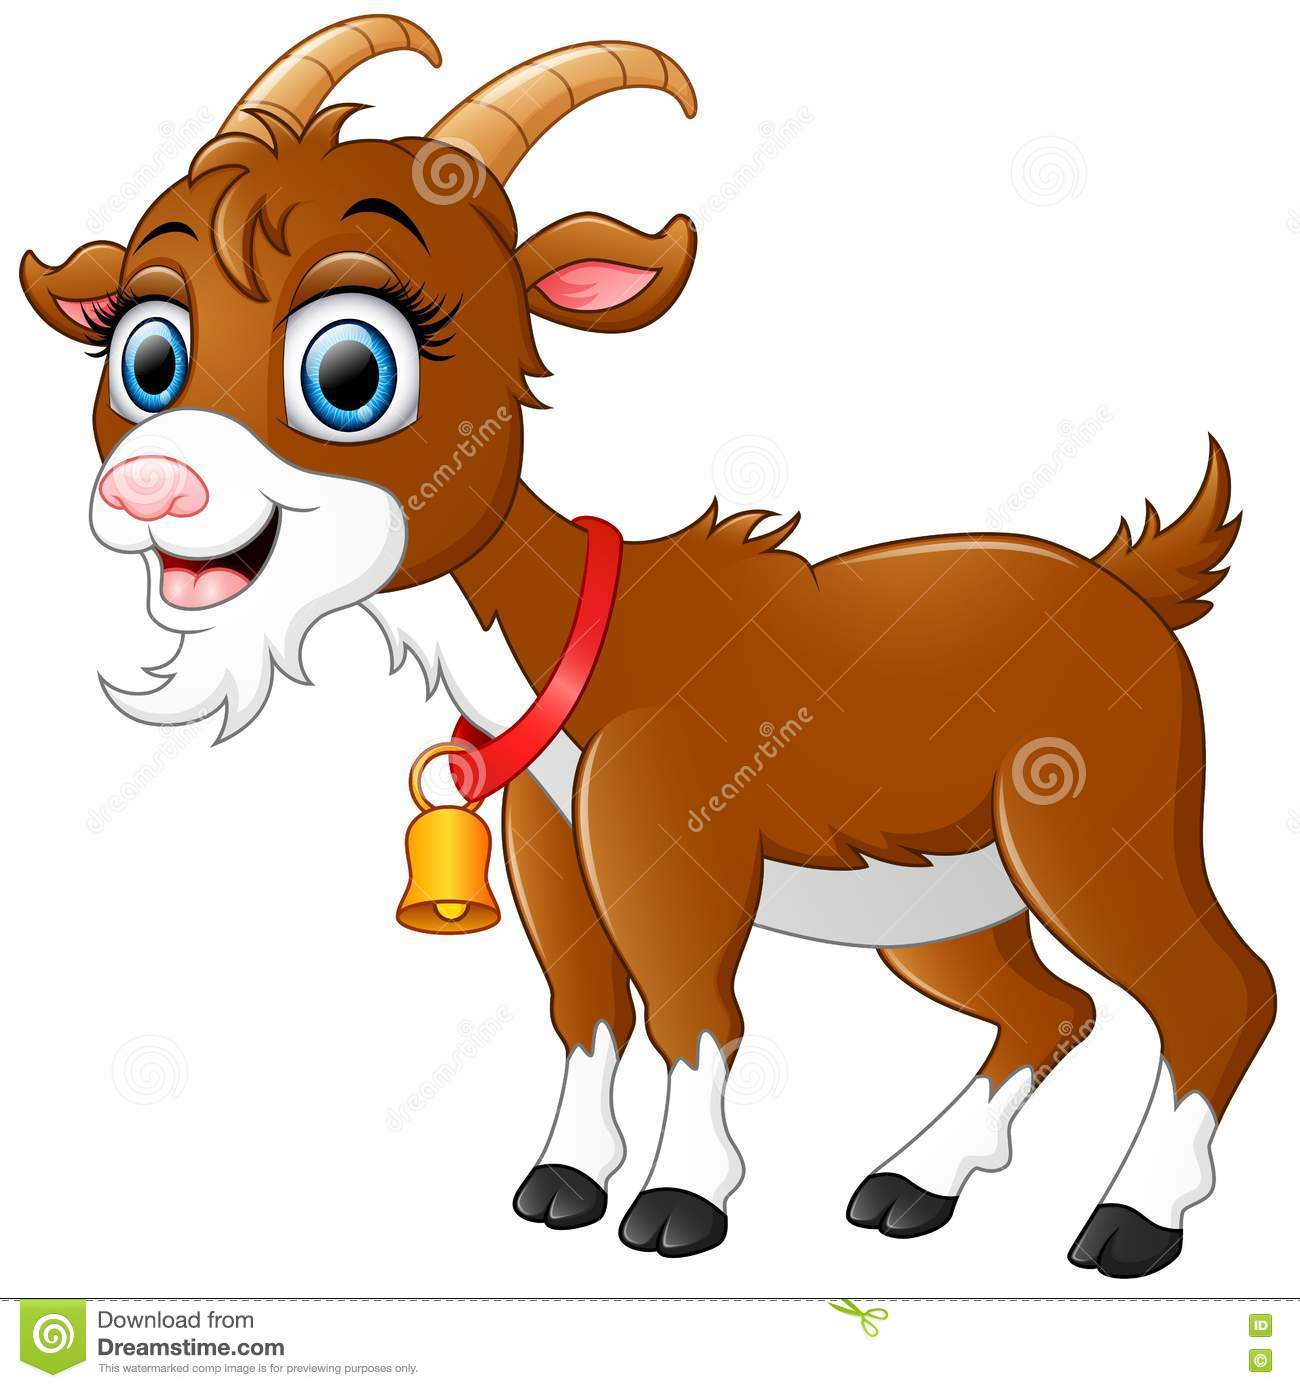 Cute Goat Clipart Cute Brown Goat Cartoon Stock Vector Image Of Creature